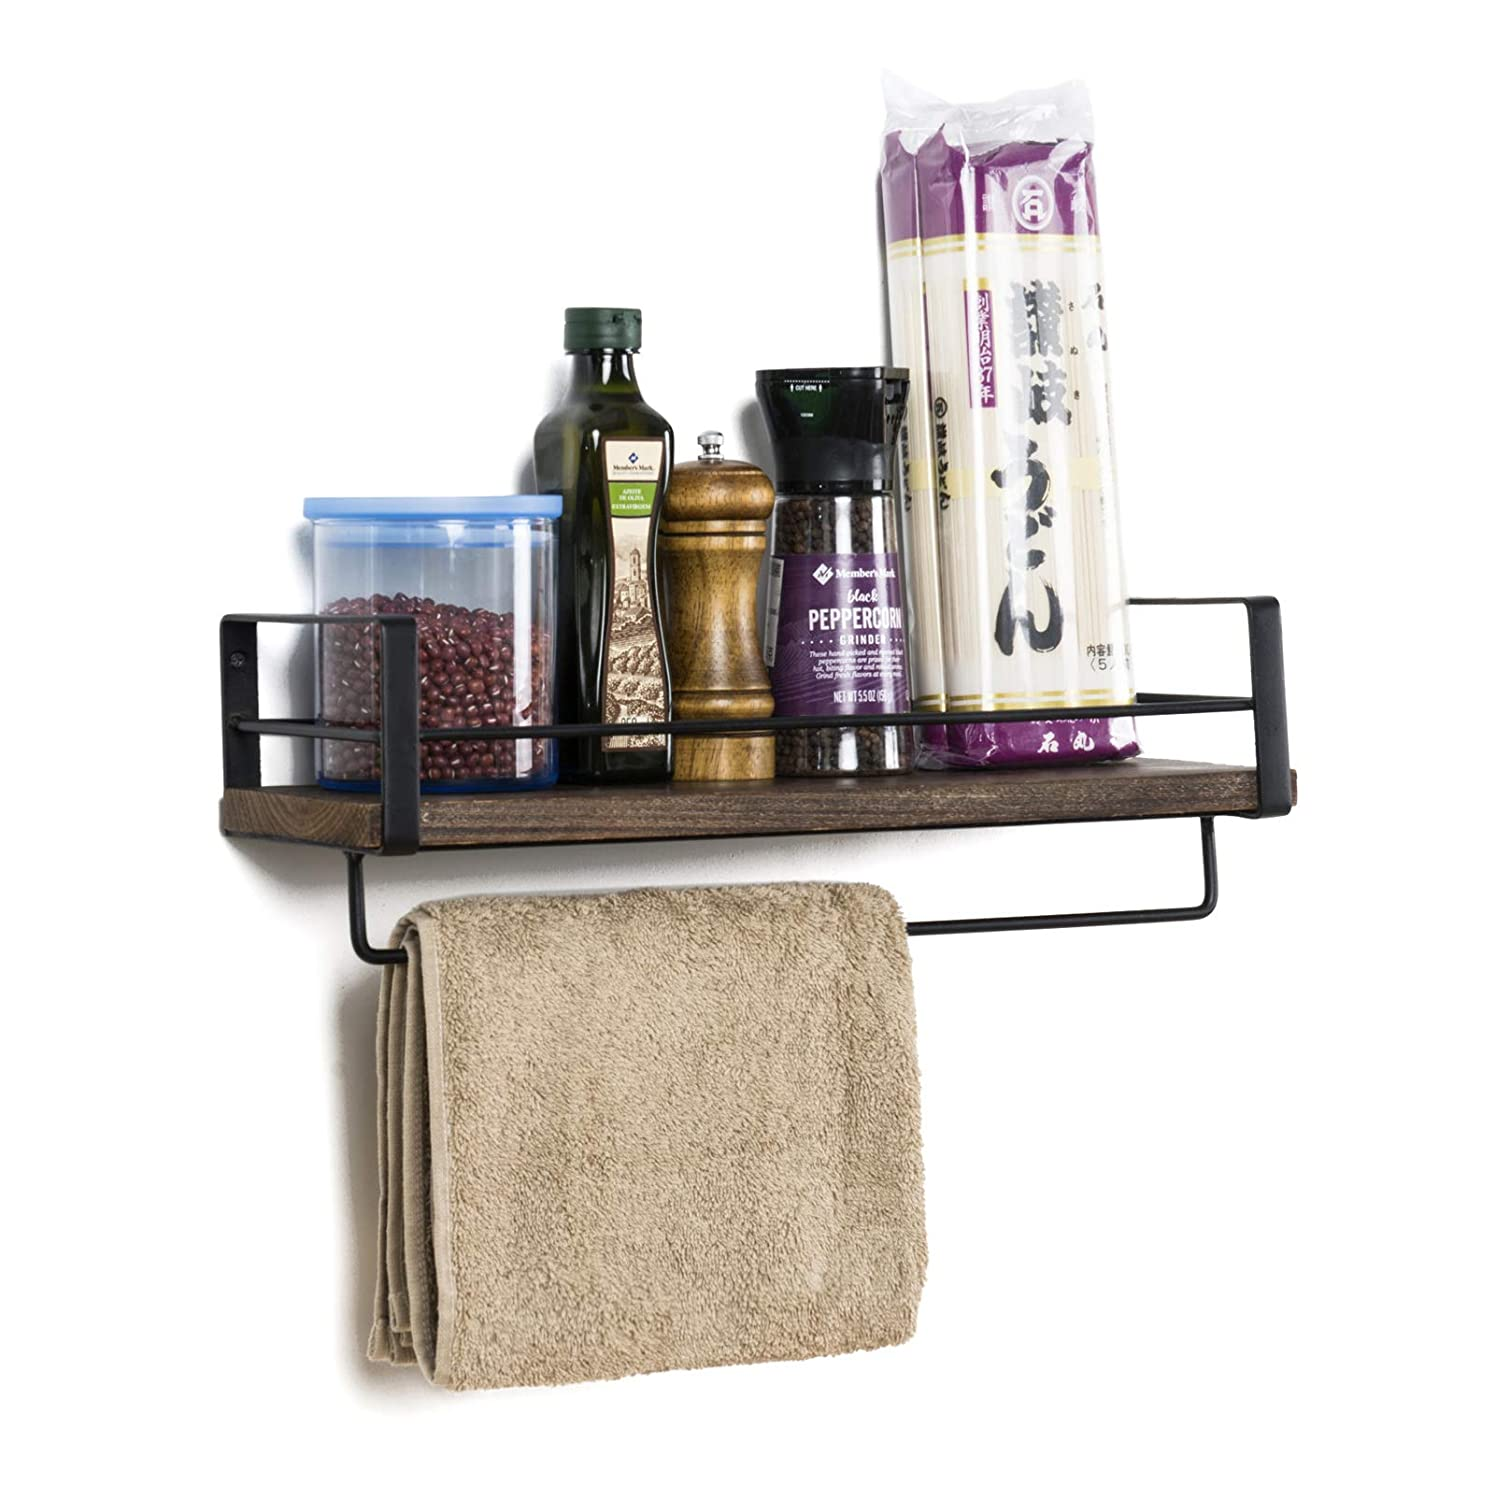 Soduku Rustic Kitchen Wood Wall Shelf, Spice Rack Shelf with Towel Bar,Wood and Metal Floating Shelves Wall Mounted Toilet Storage Shelf for Kitchen Bathroom Bedroom Living Room